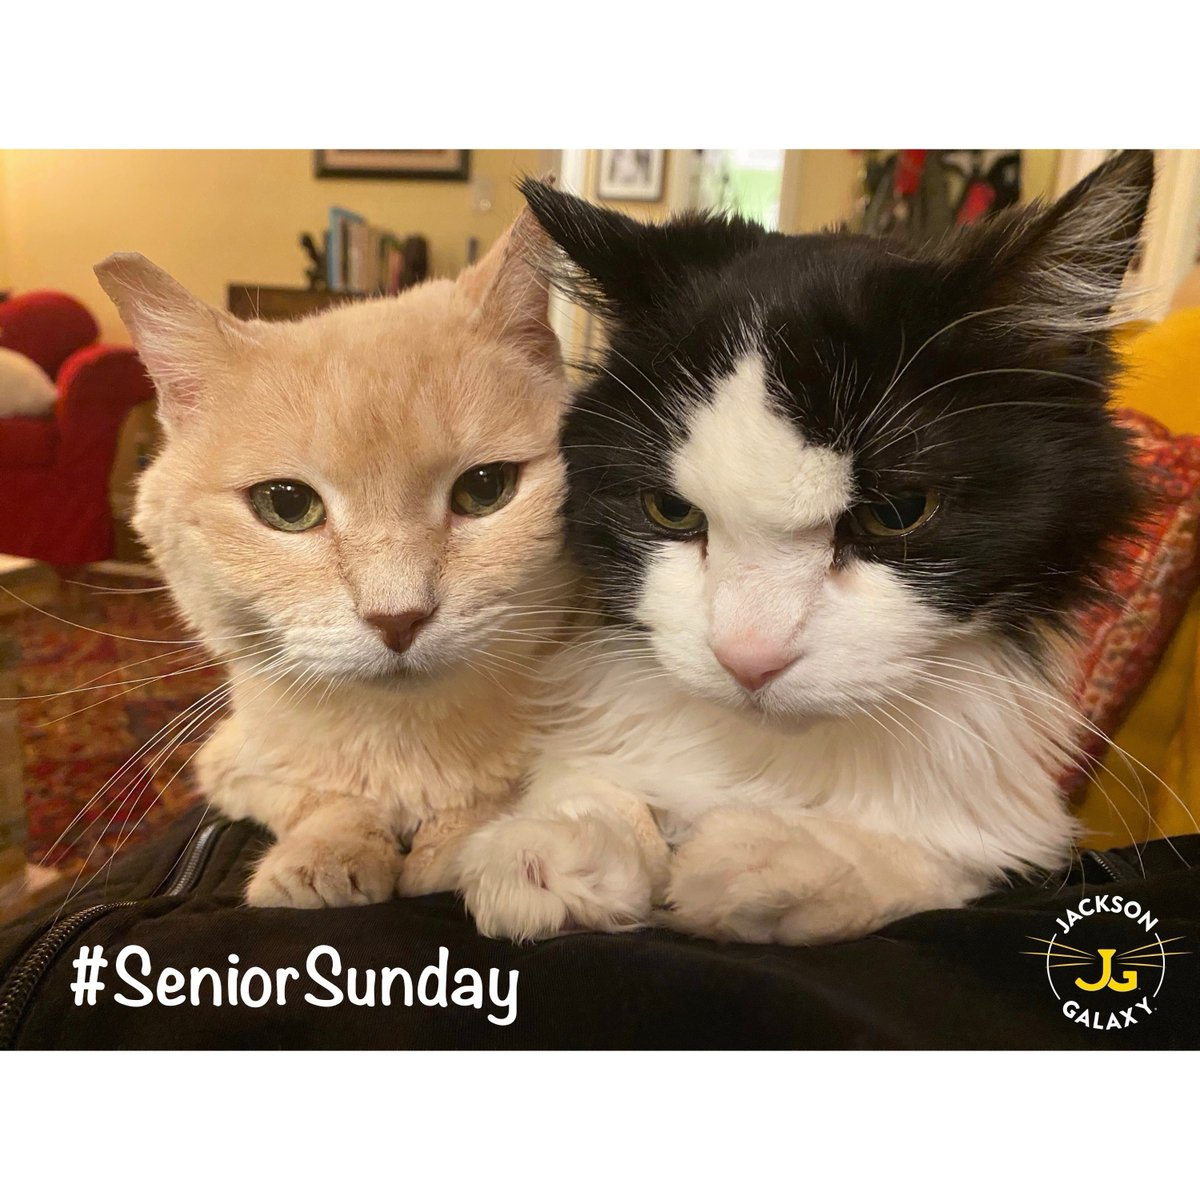 Gabby (on left) and Pishi are currently two of our oldest seniors, at 16 and 17 years old. Pishi had been enjoying some solo couch-time on my chest when Gabby squeezed her way onboard. Clearly, Pishi was...thrilled with this new arrangement. #SeniorSunday